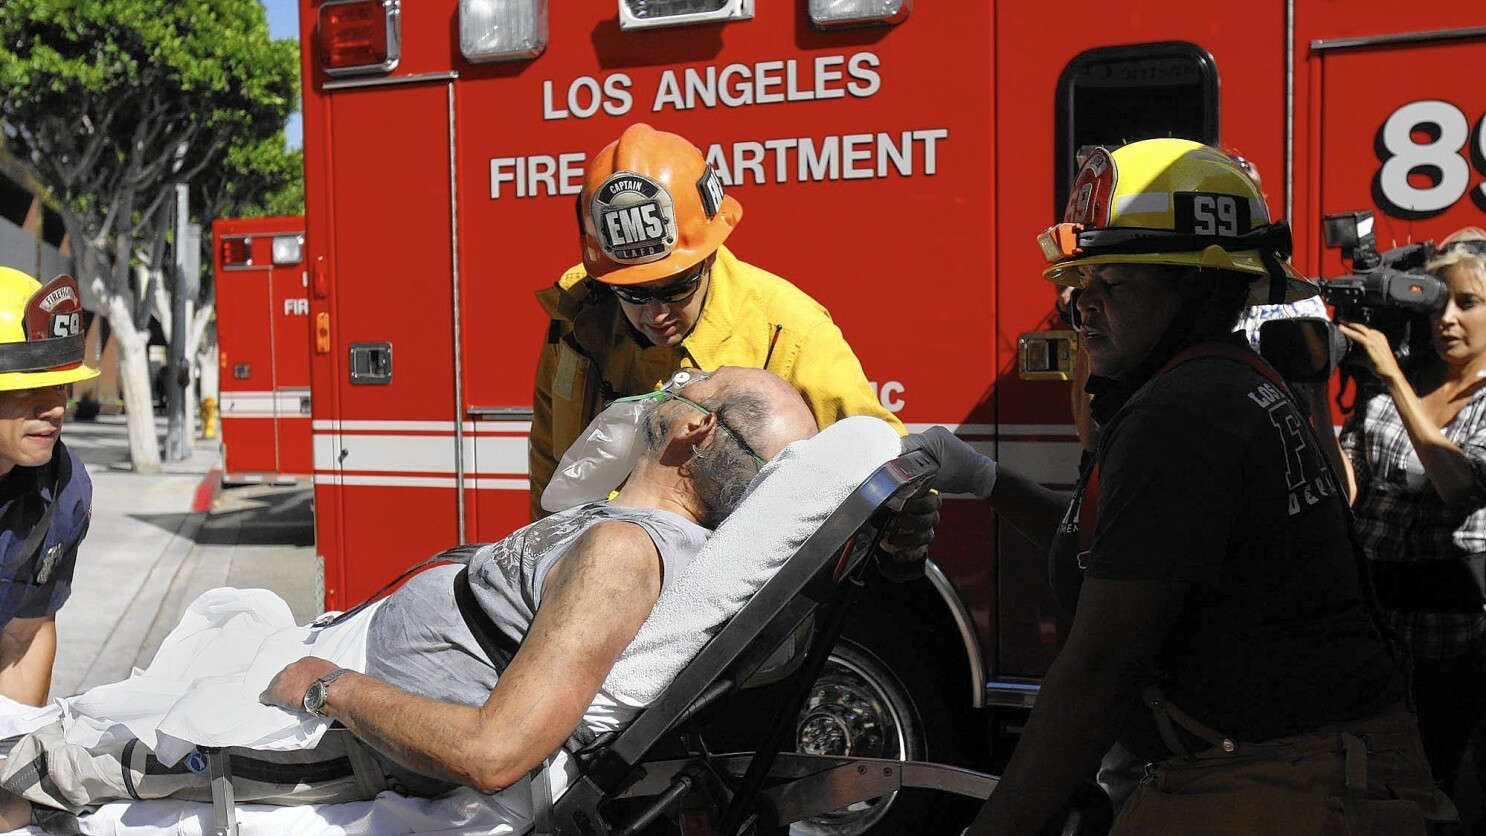 Column Should A Man Taken To The Er In An Ambulance Against His Will Have To Pay The Bill Los Angeles Times Do not post restricted content. er in an ambulance against